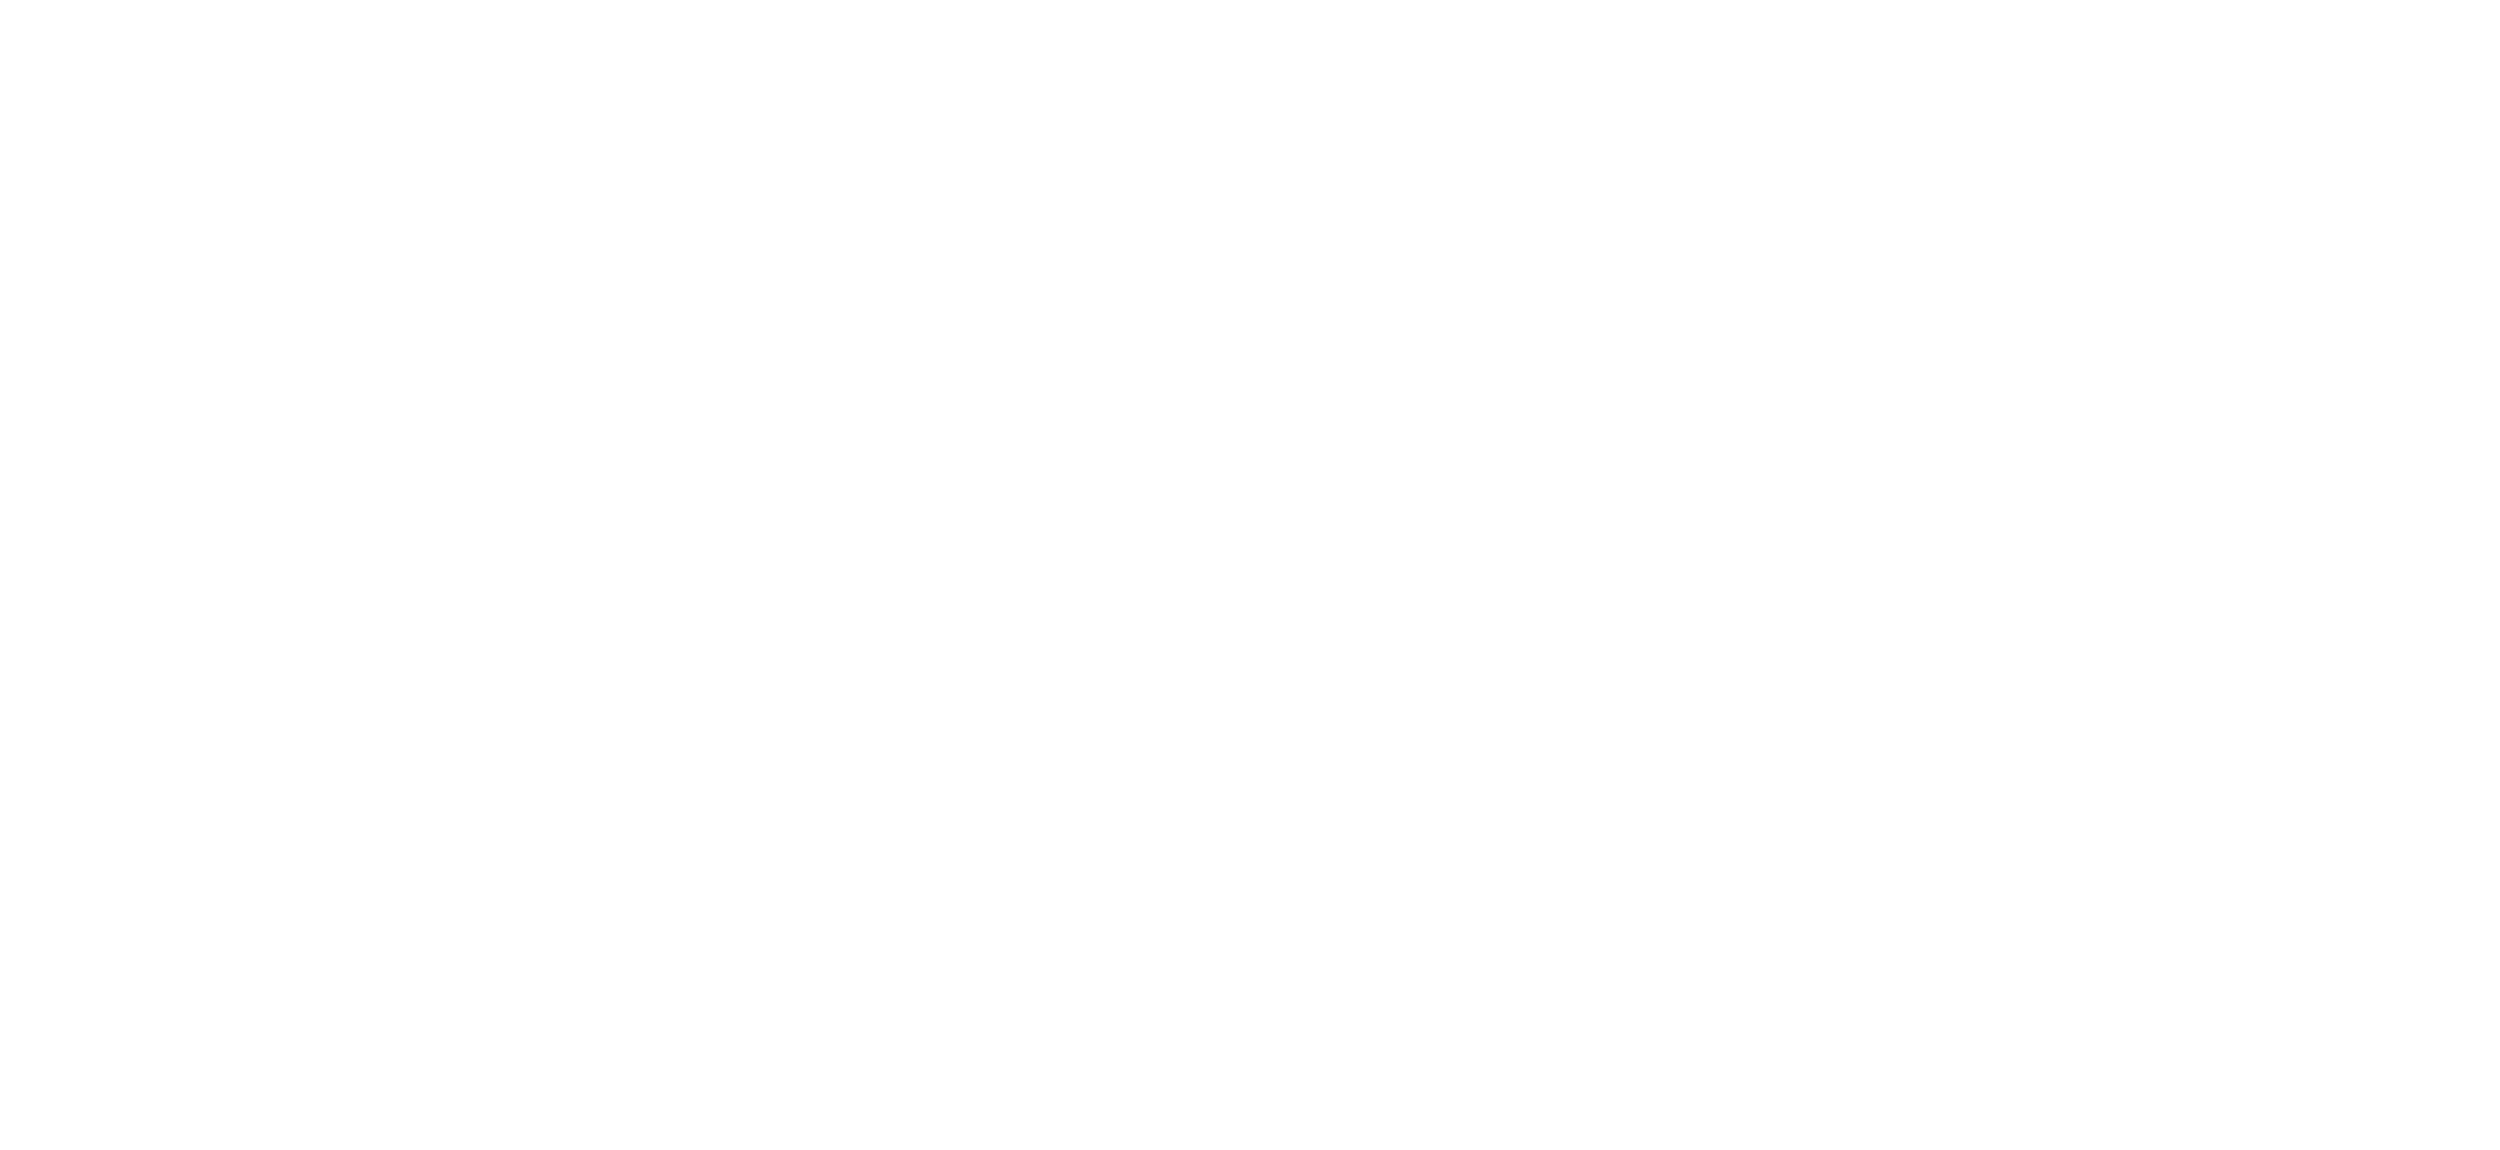 extec-logo-ready-for-adventure-white.png